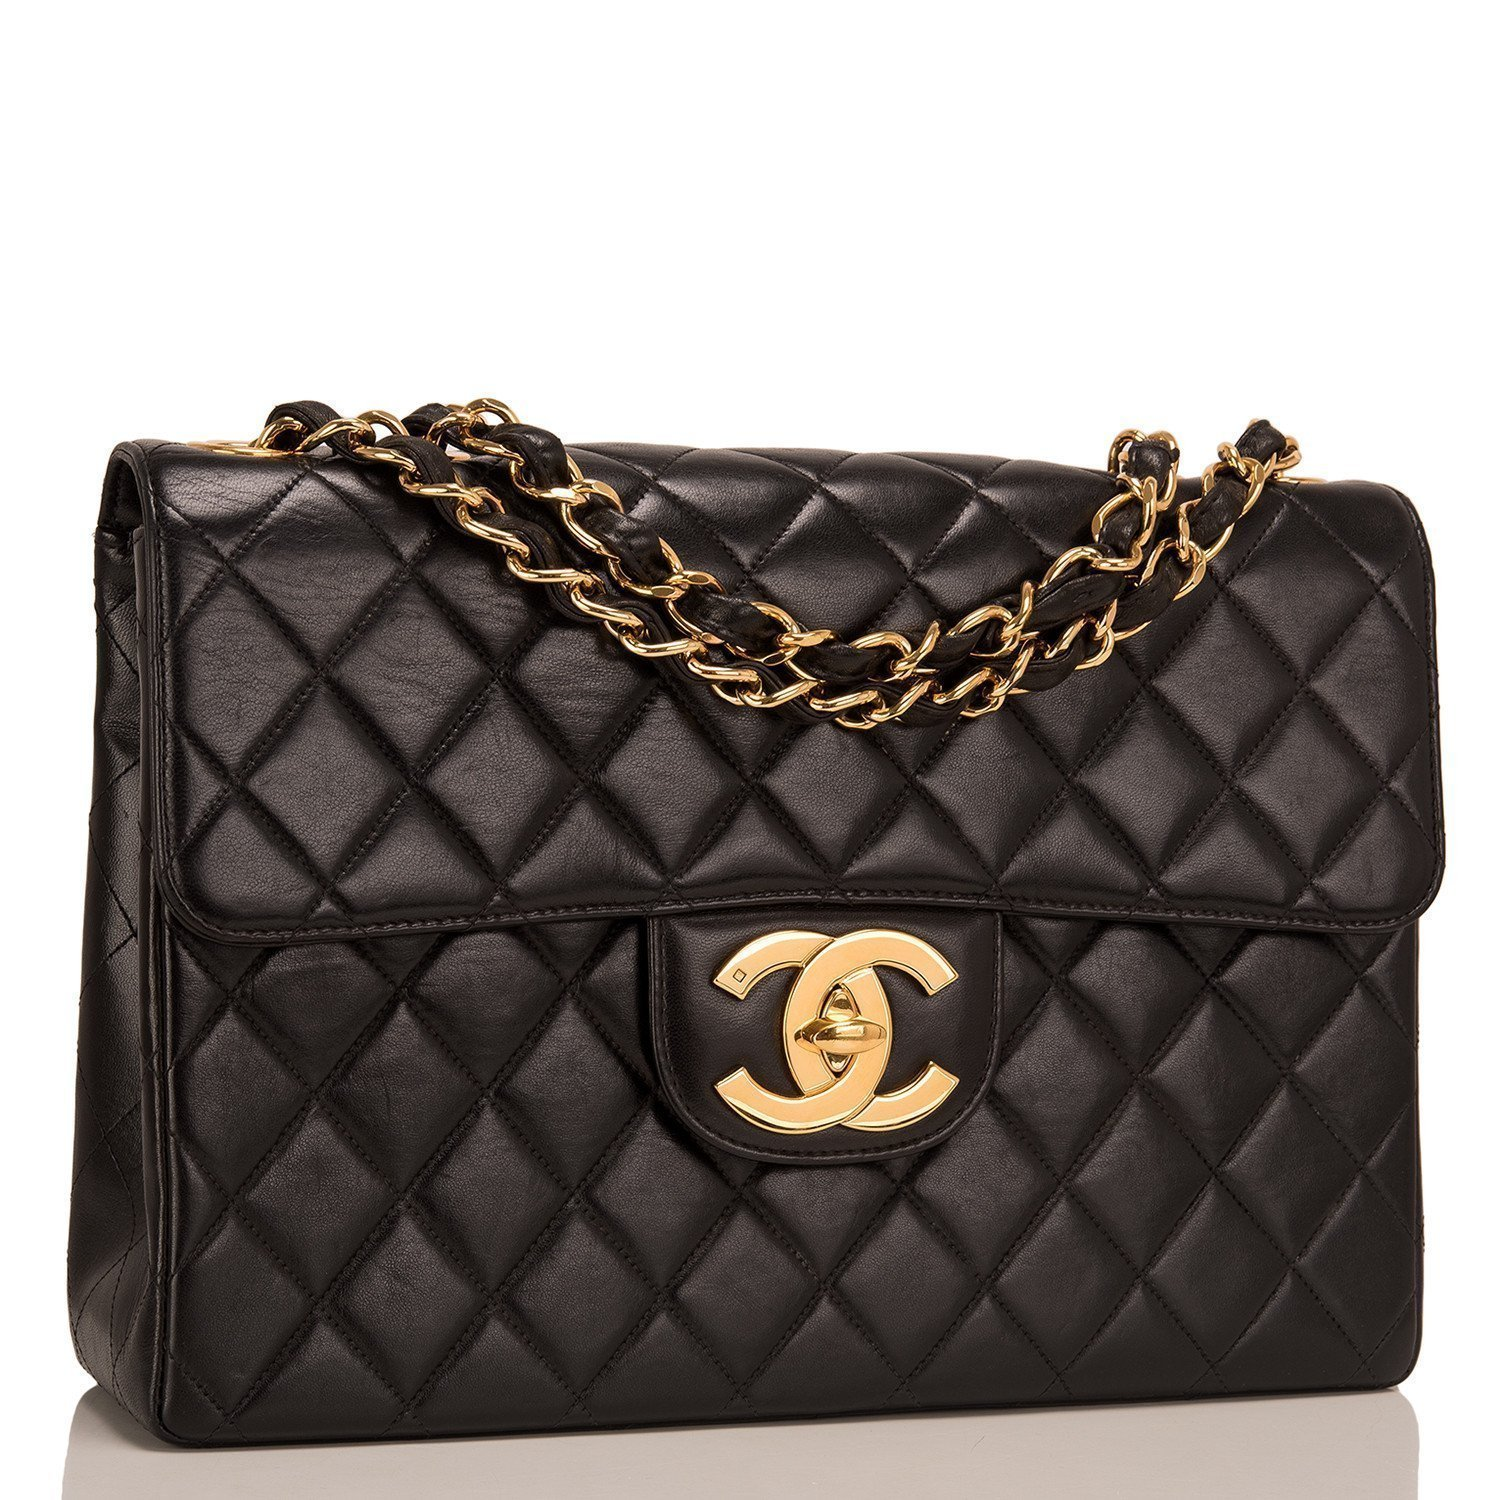 005f45ba38a6 Chanel Vintage Quilted Lambskin Jumbo Classic Flap Bag - SecondsBoutique